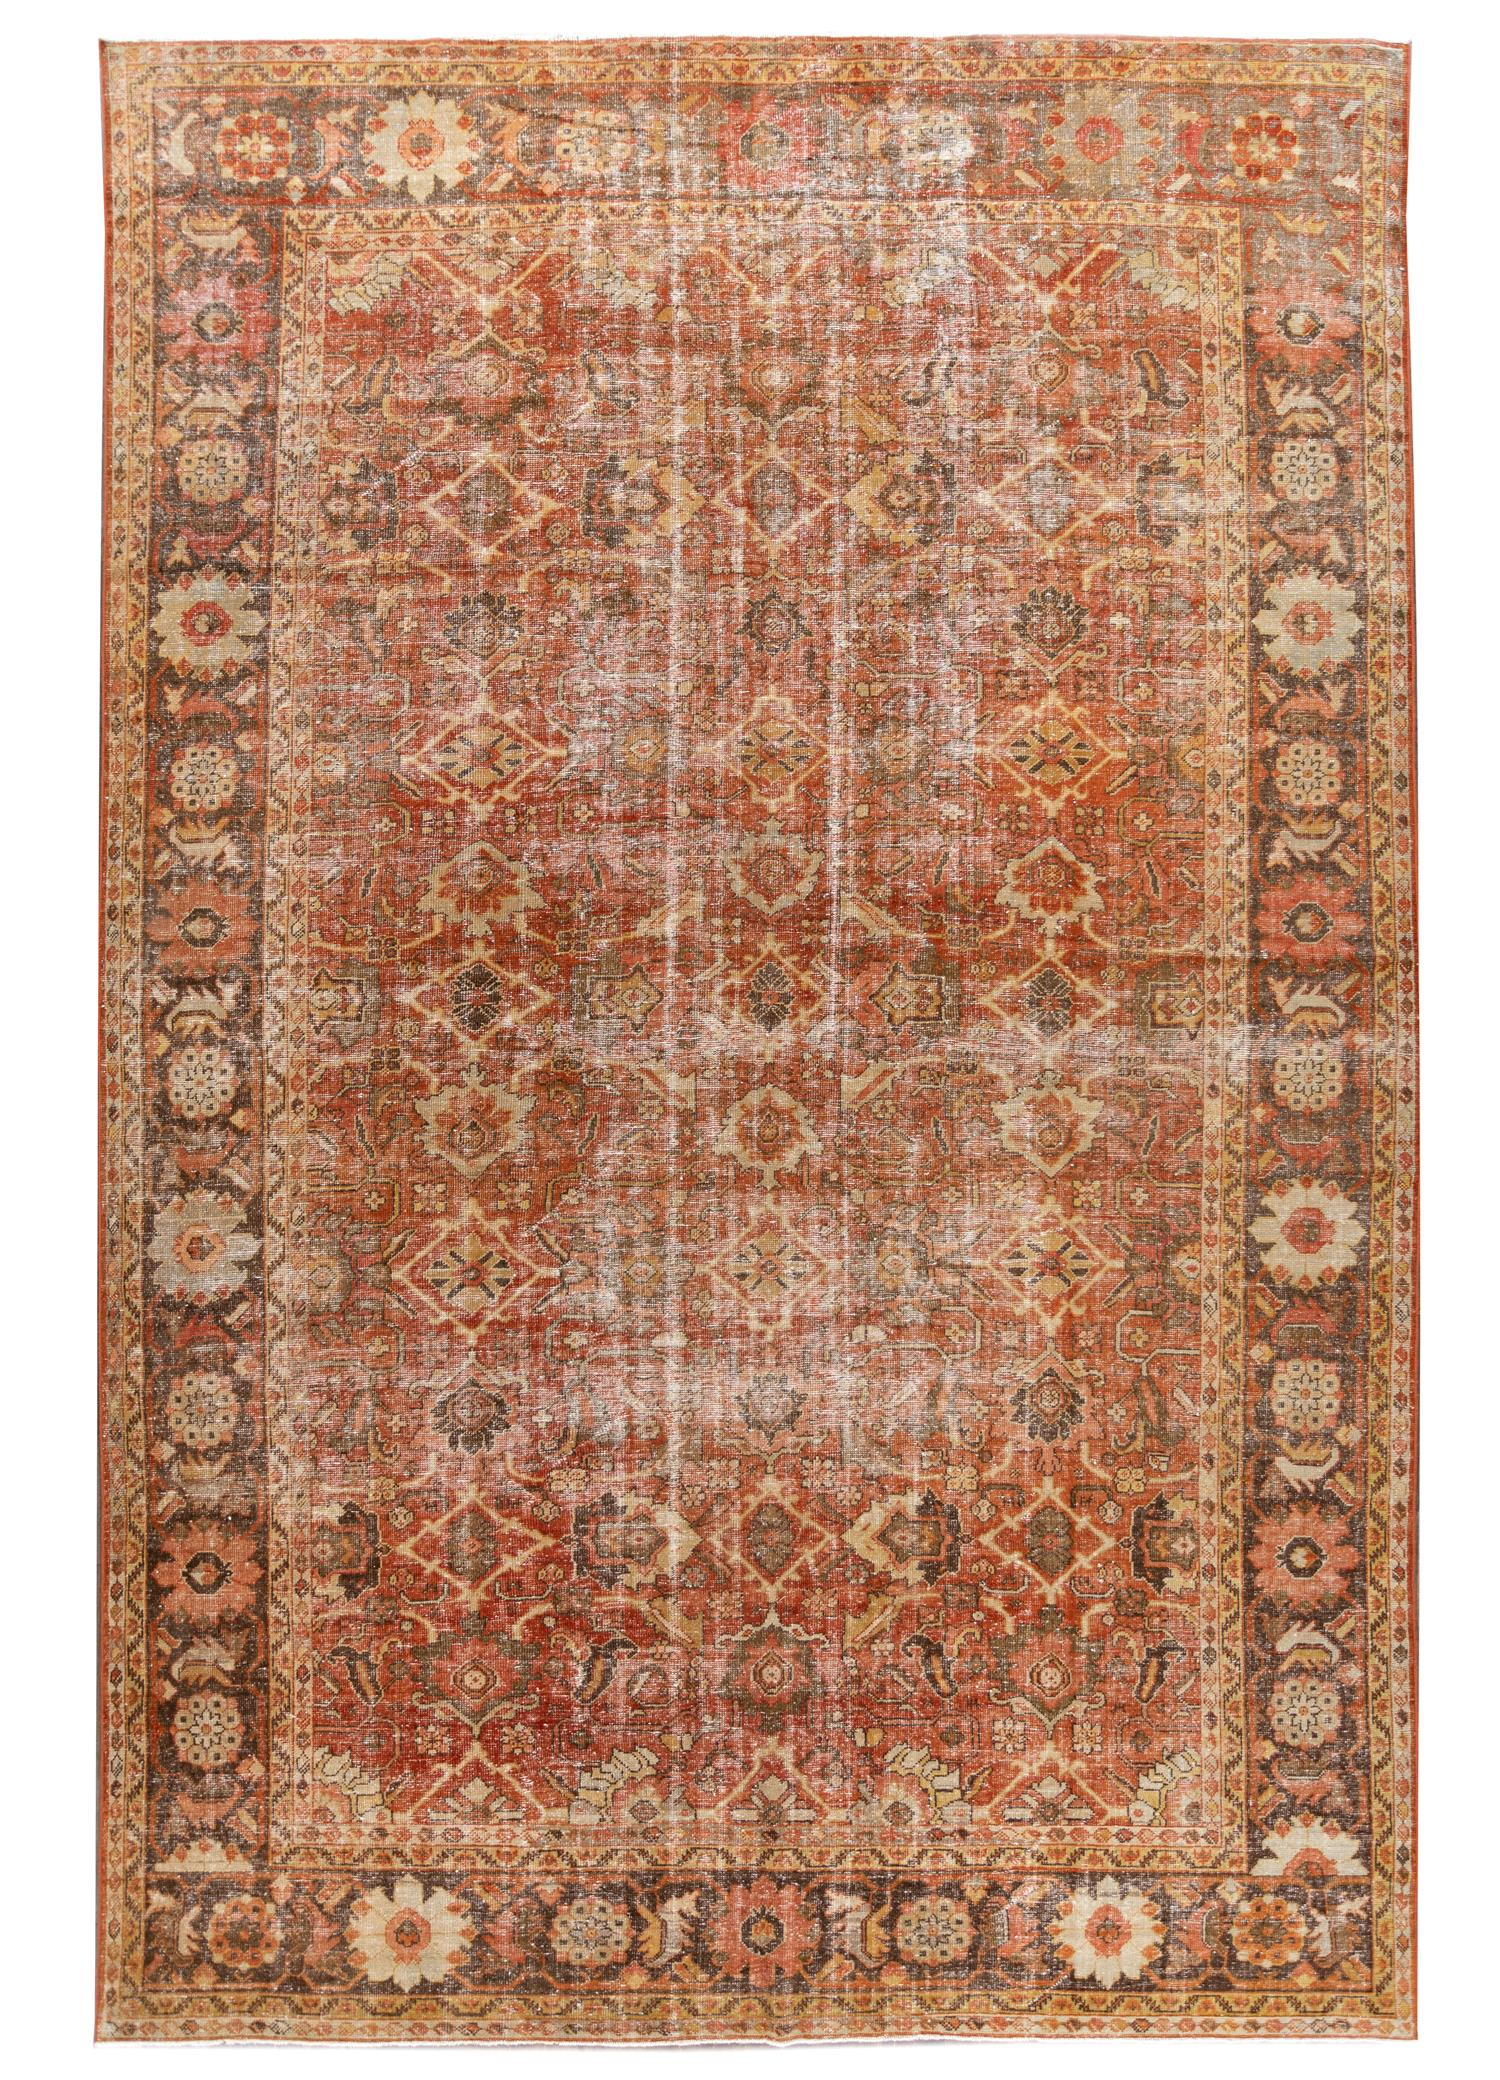 Antique Mahal Rug, #10235249, 11X17